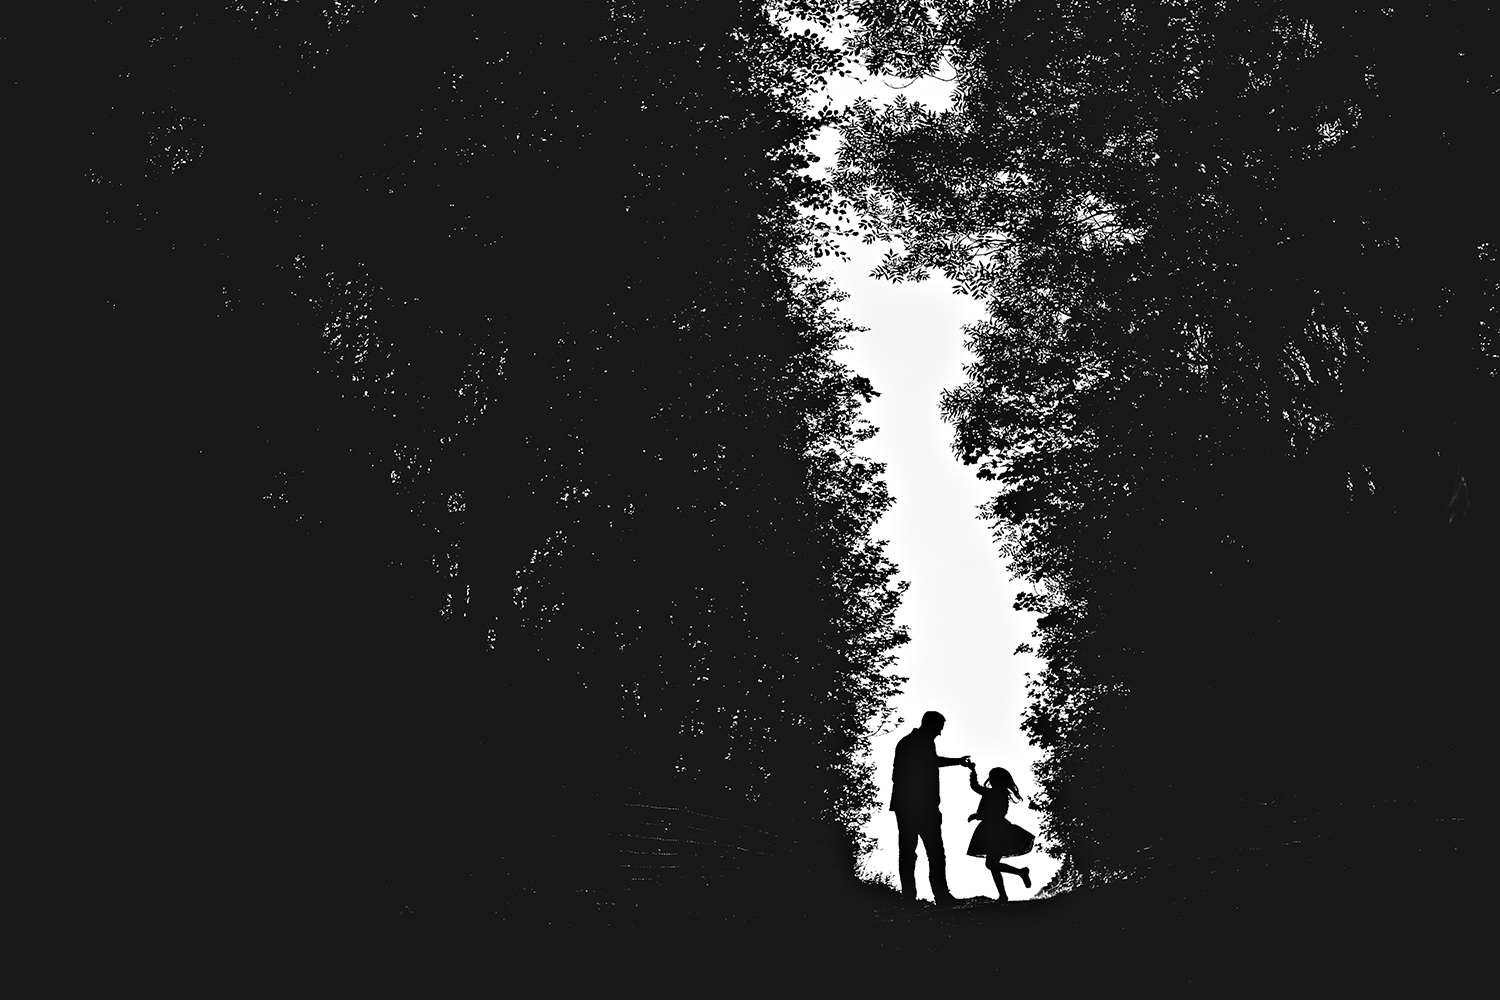 silhouette image of girl dancing with her dad.